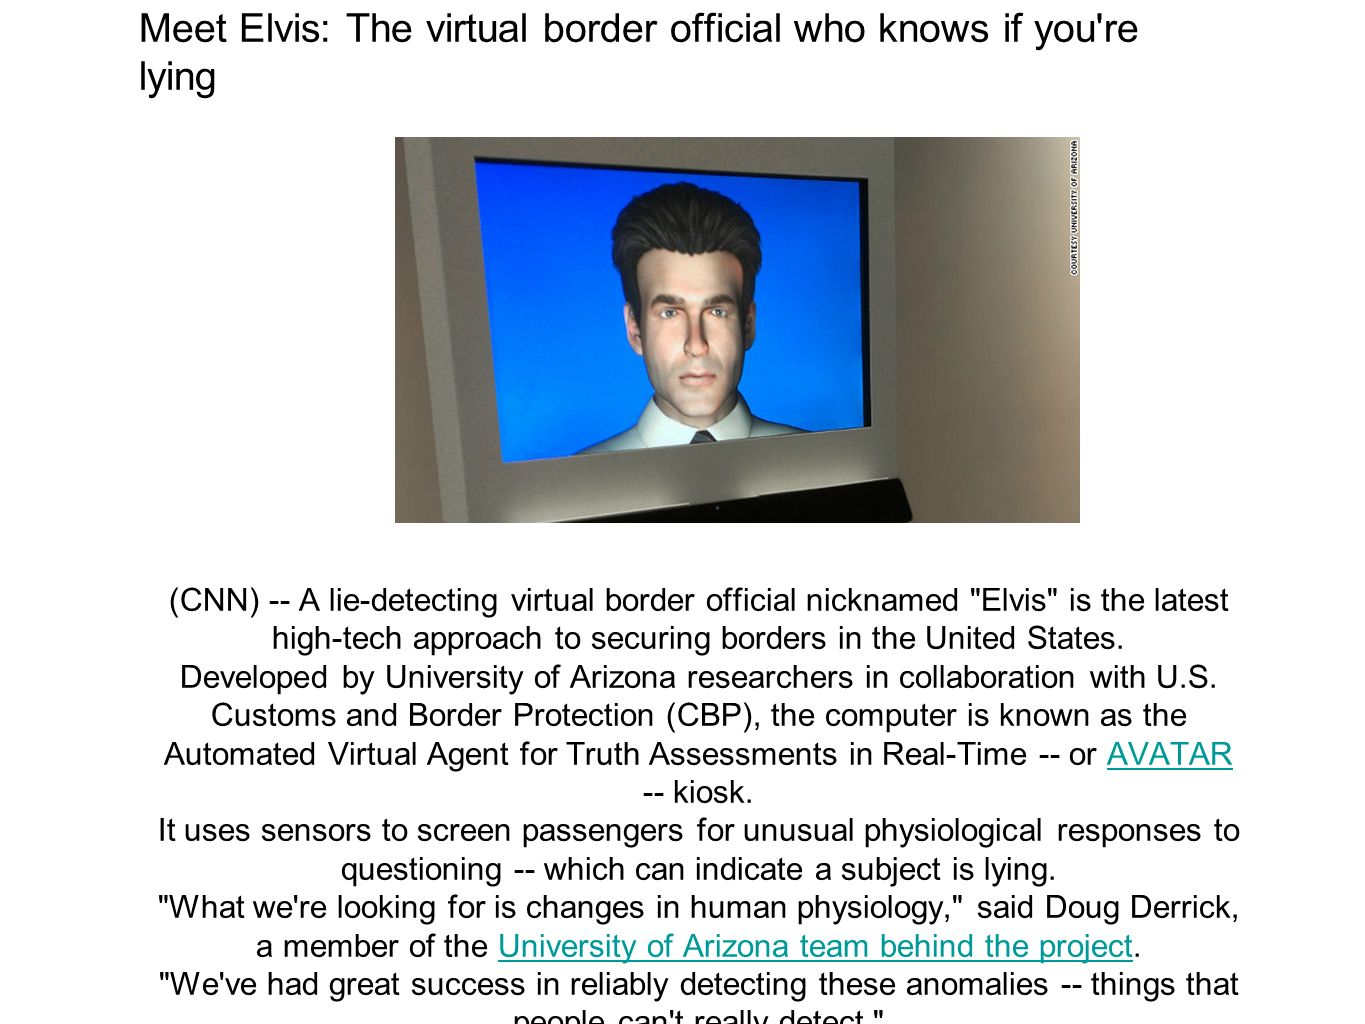 Meet Elvis: The virtual border official who knows if you re lying